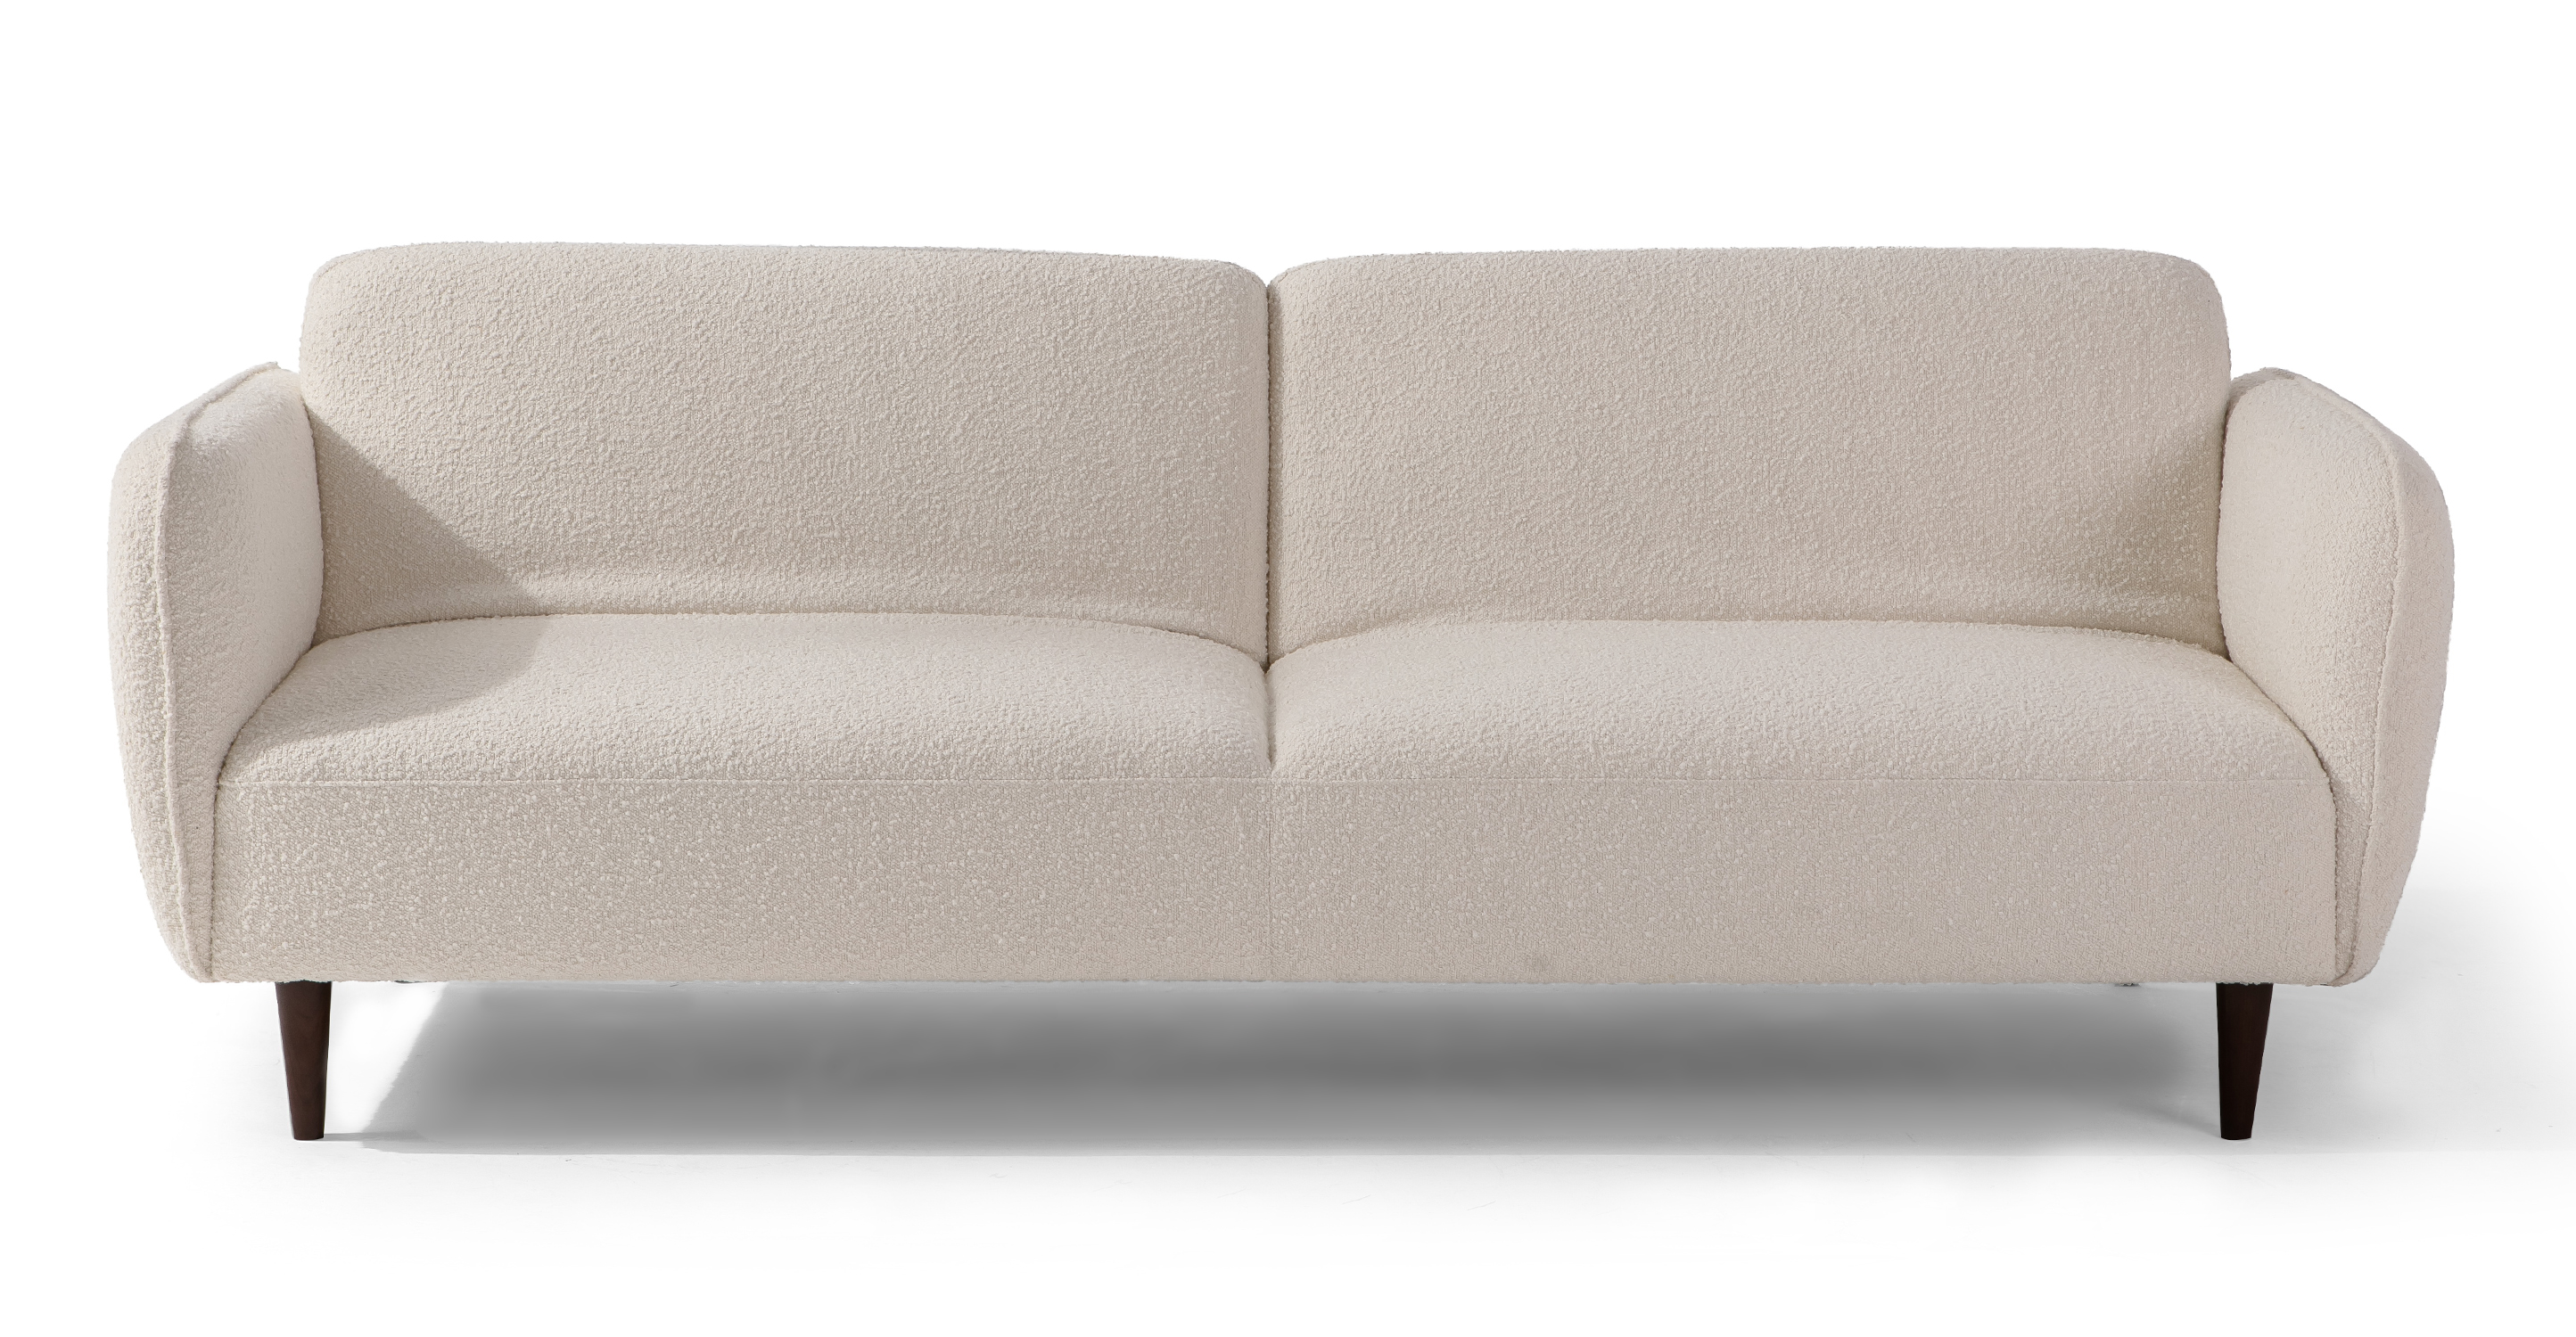 "Omer 88"" Fabric Sofa Sleeper, Blanc Boucle"